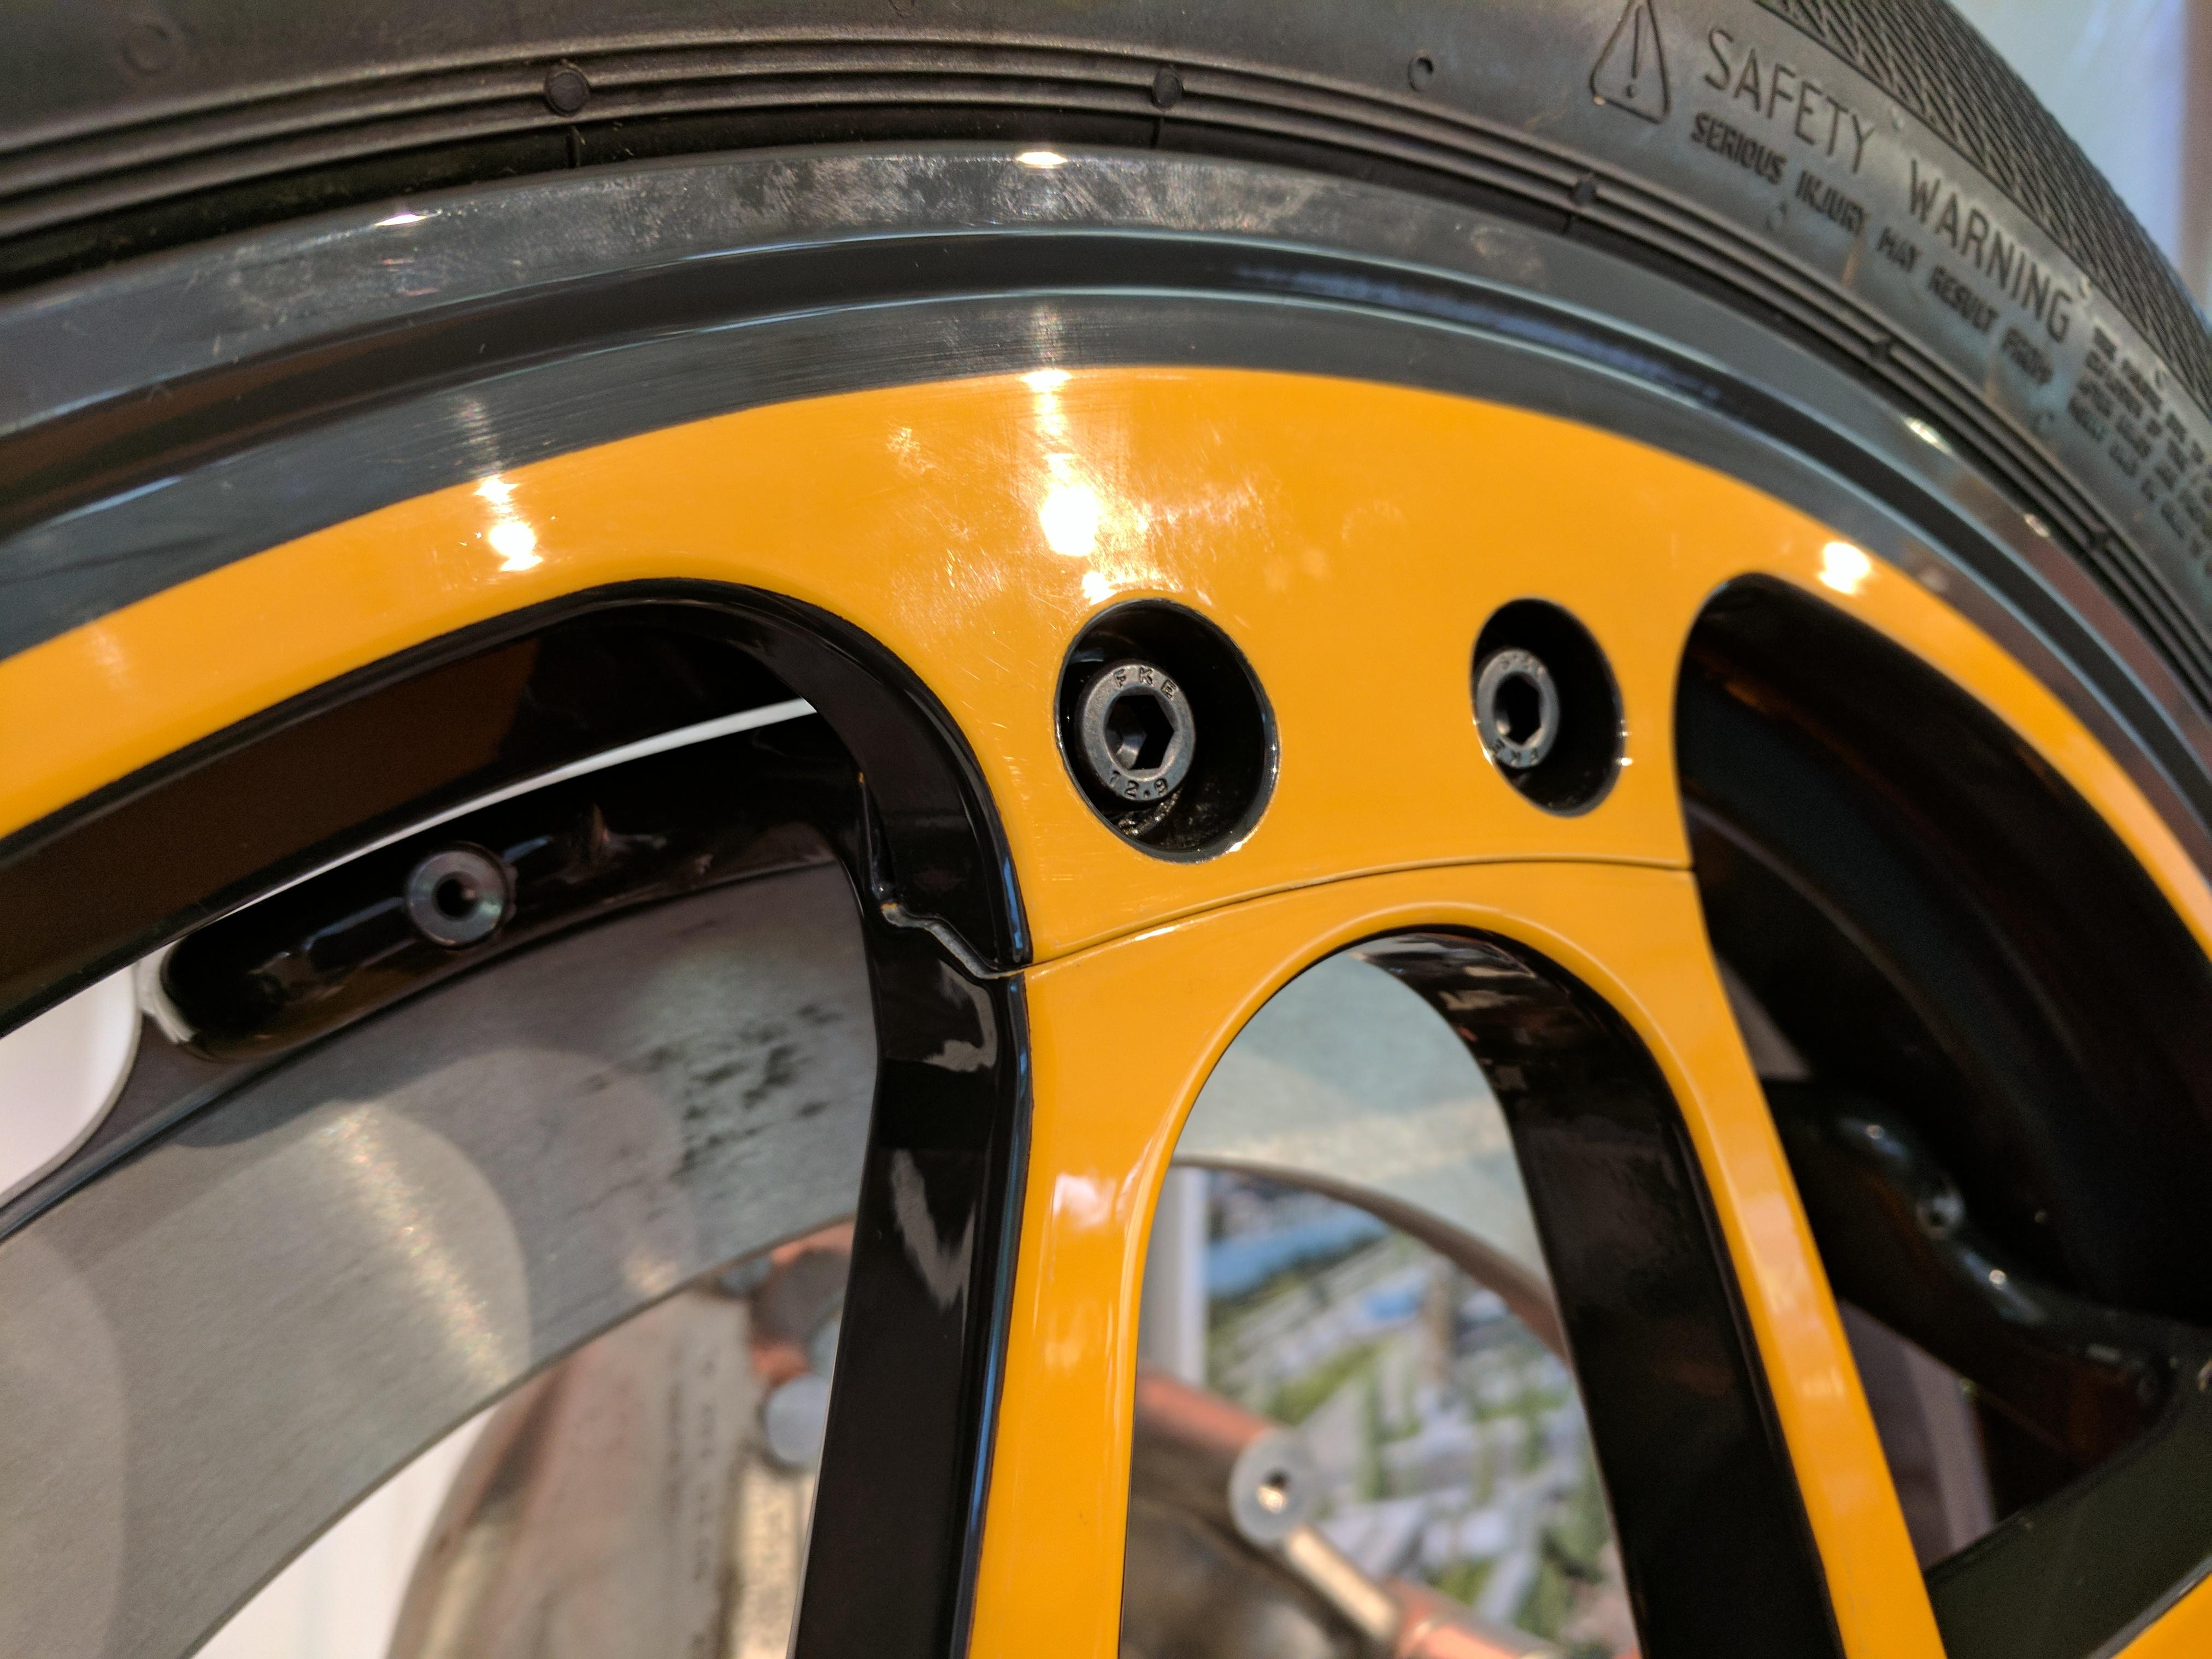 Continental New Wheel Concept (detail)